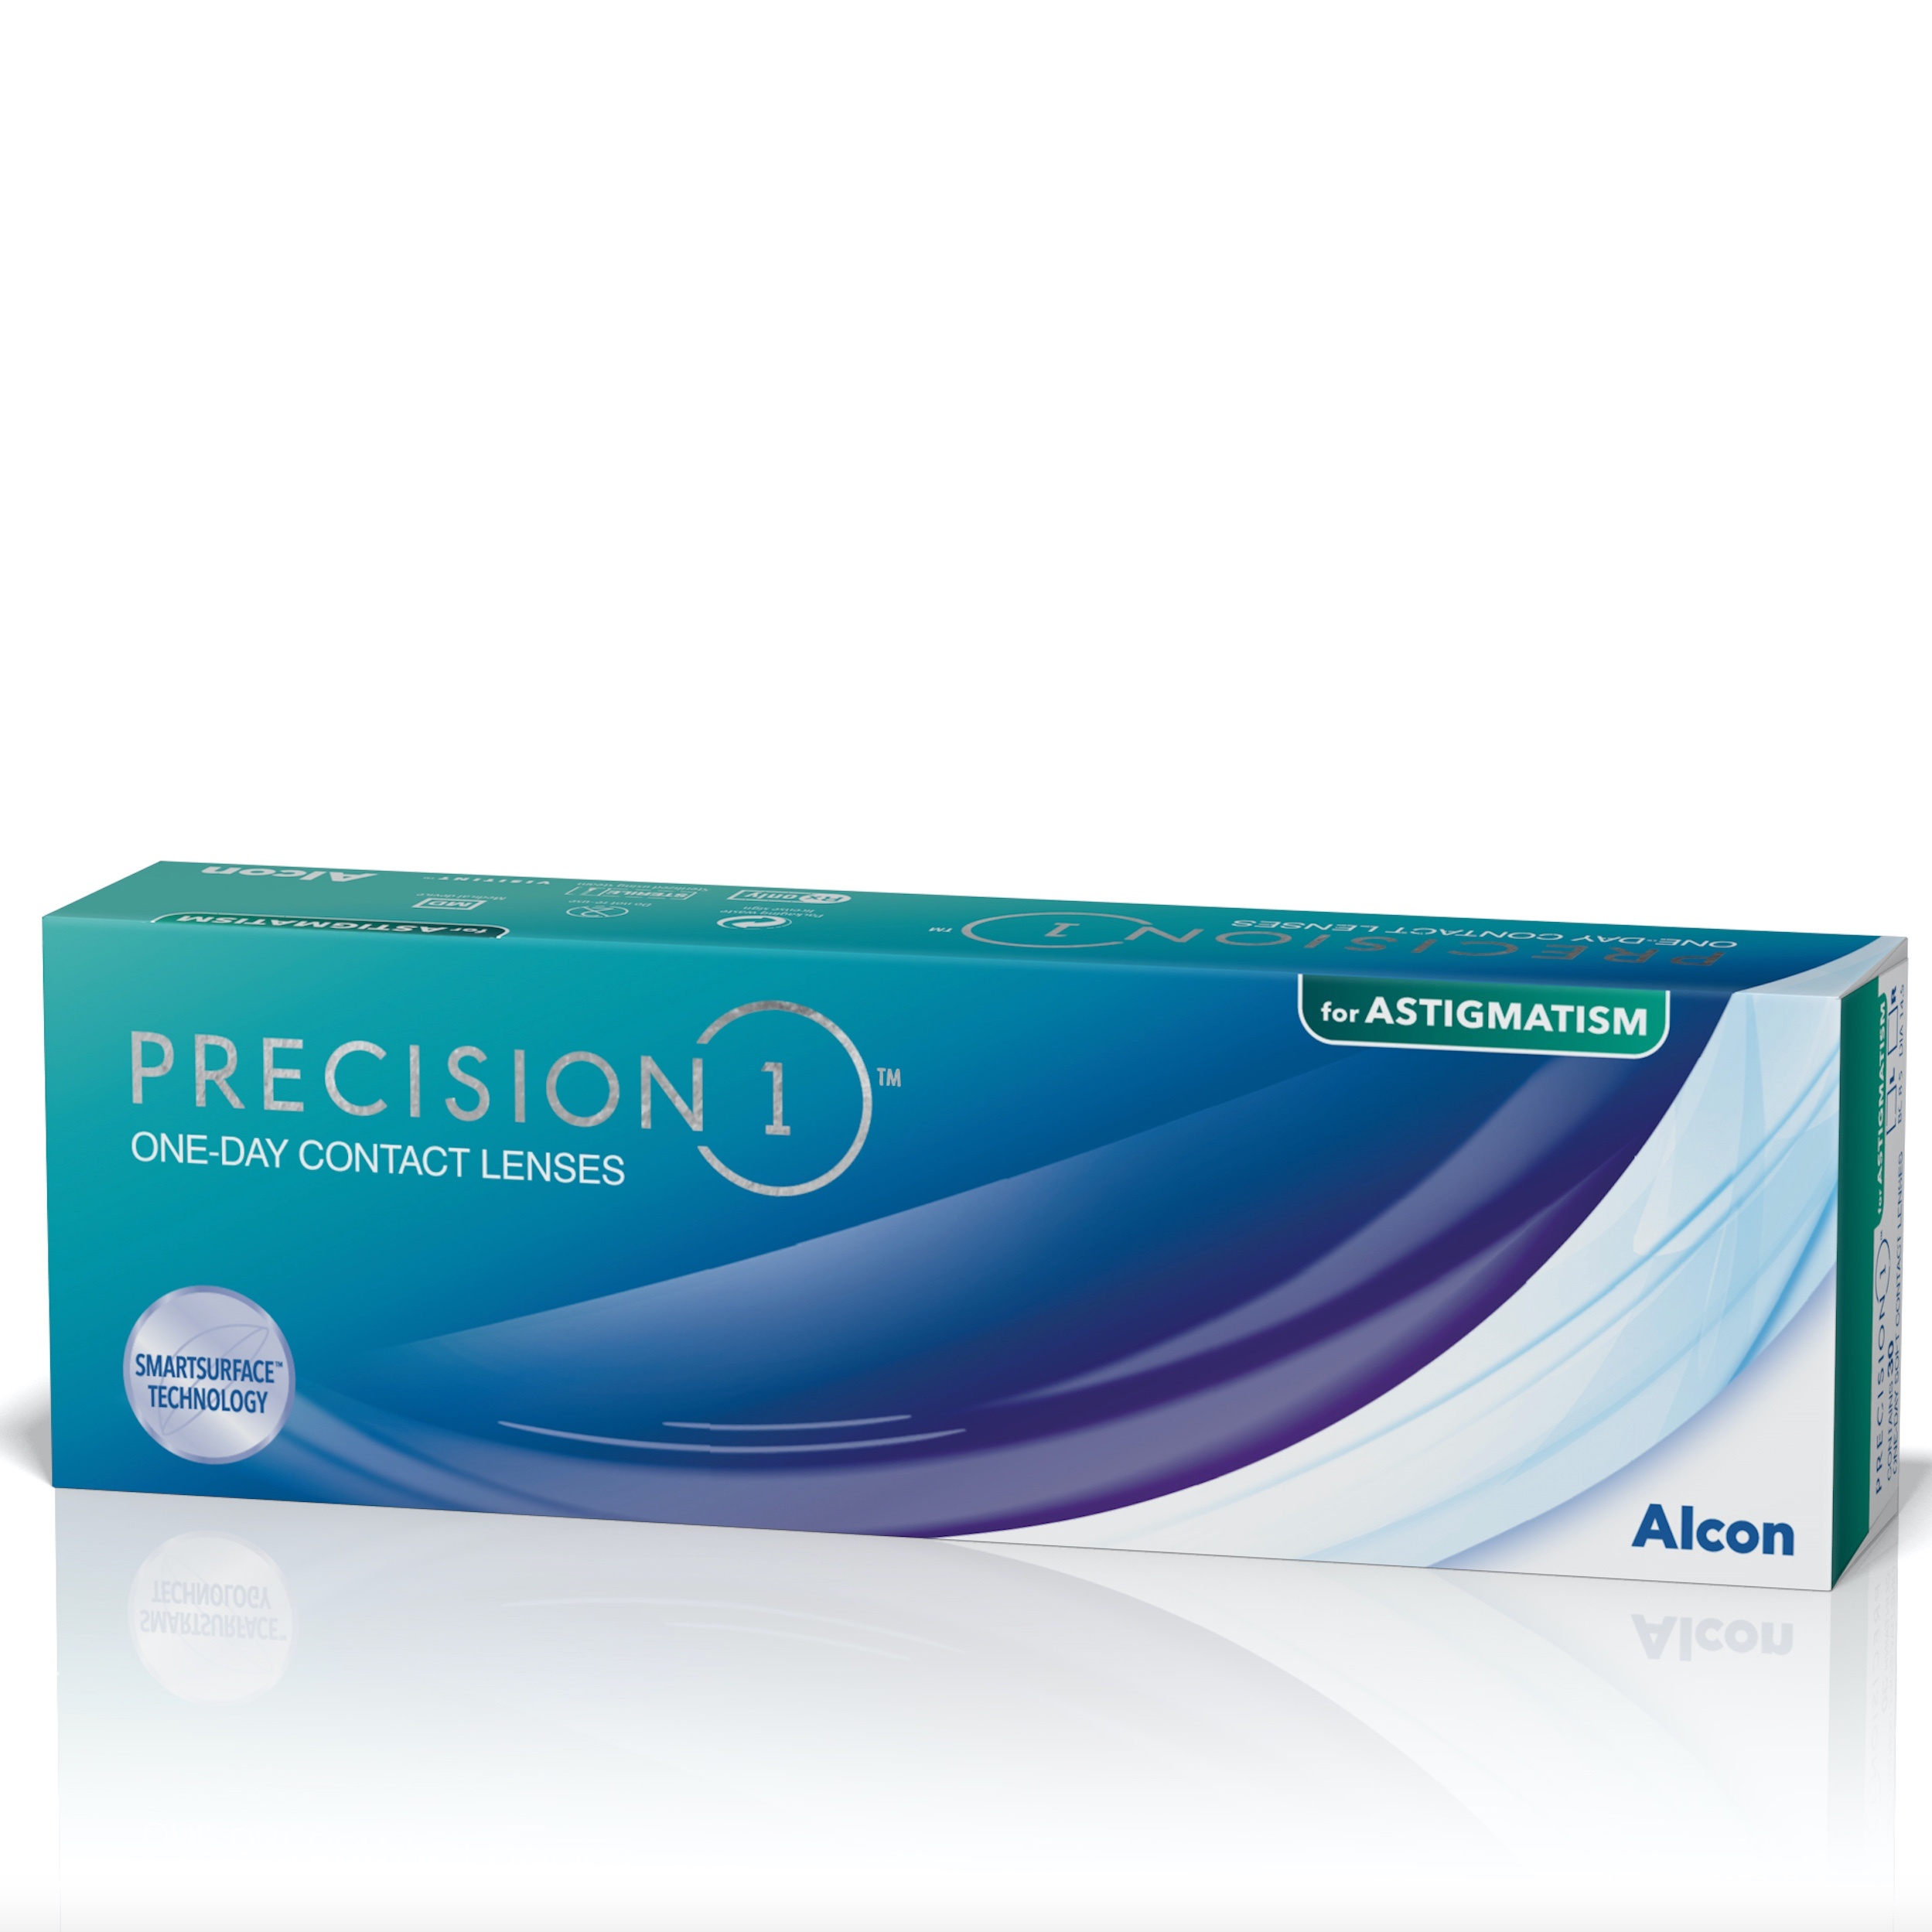 PRECISION 1 for Astigmatism -30